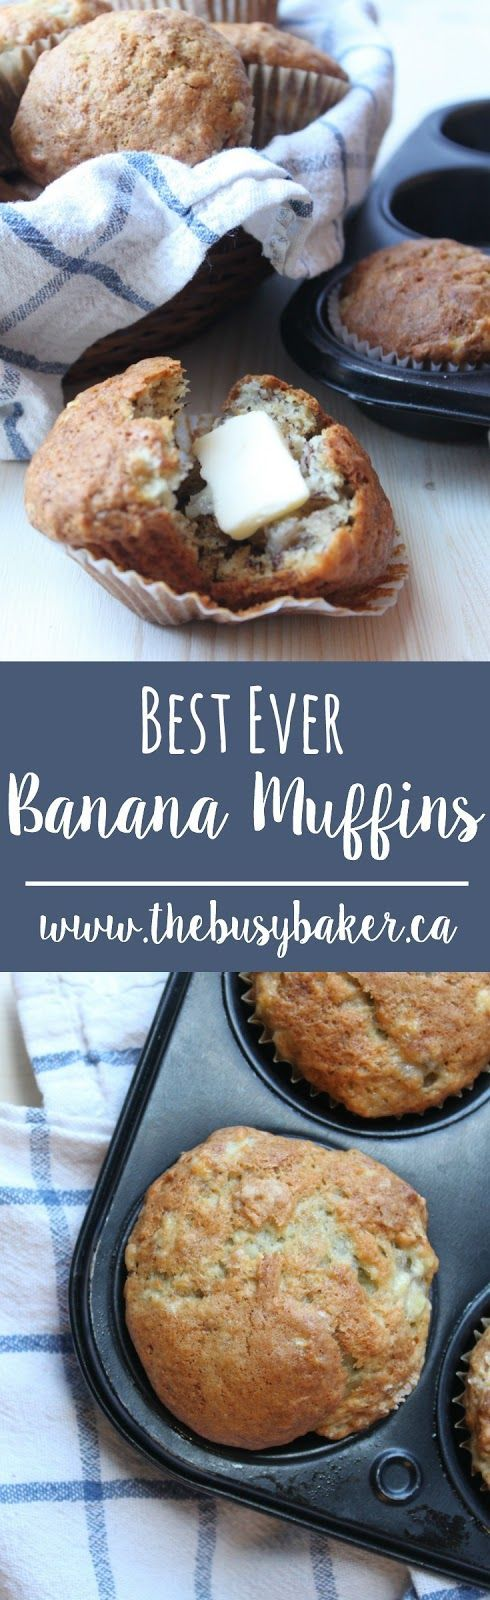 These Best Ever Banana Muffins are exactly that – the best banana muffins you'll ever make! I've made these muffins hundreds of times because they're easy to make, they call for simple ingredients, and they turn out perfectly every single time: crispy on the outside and soft and fluffy on the inside. Trust me, this...